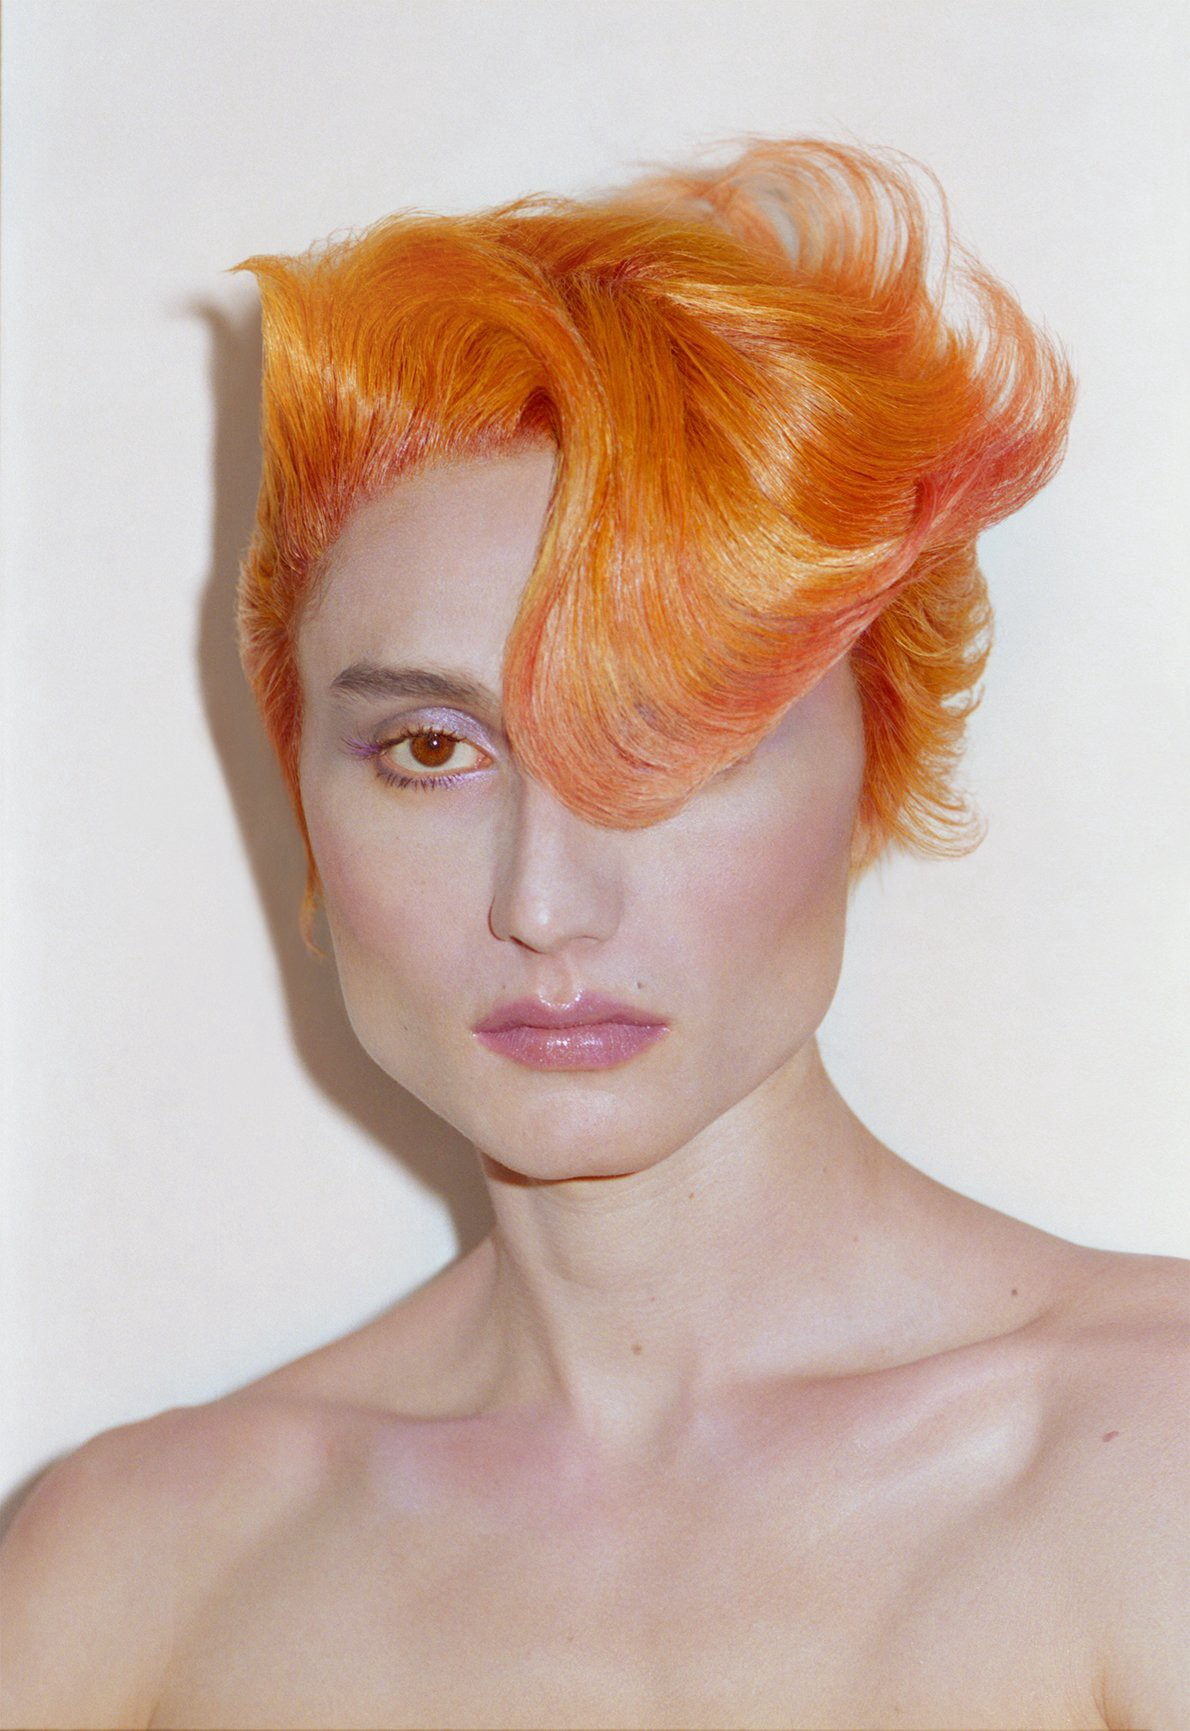 Japan-based wigmaker and hairstylist Tomihiro Kono's rainbow-colored creations demonstrate the power of wigs in influencing perceptions of a person's character. (Photo: Photo by Sayaka Maruyama, Wig: Tomihiro Kono, Makeup: Chiho Omae, Model: Cameron Lee Phan, The New Beauty)